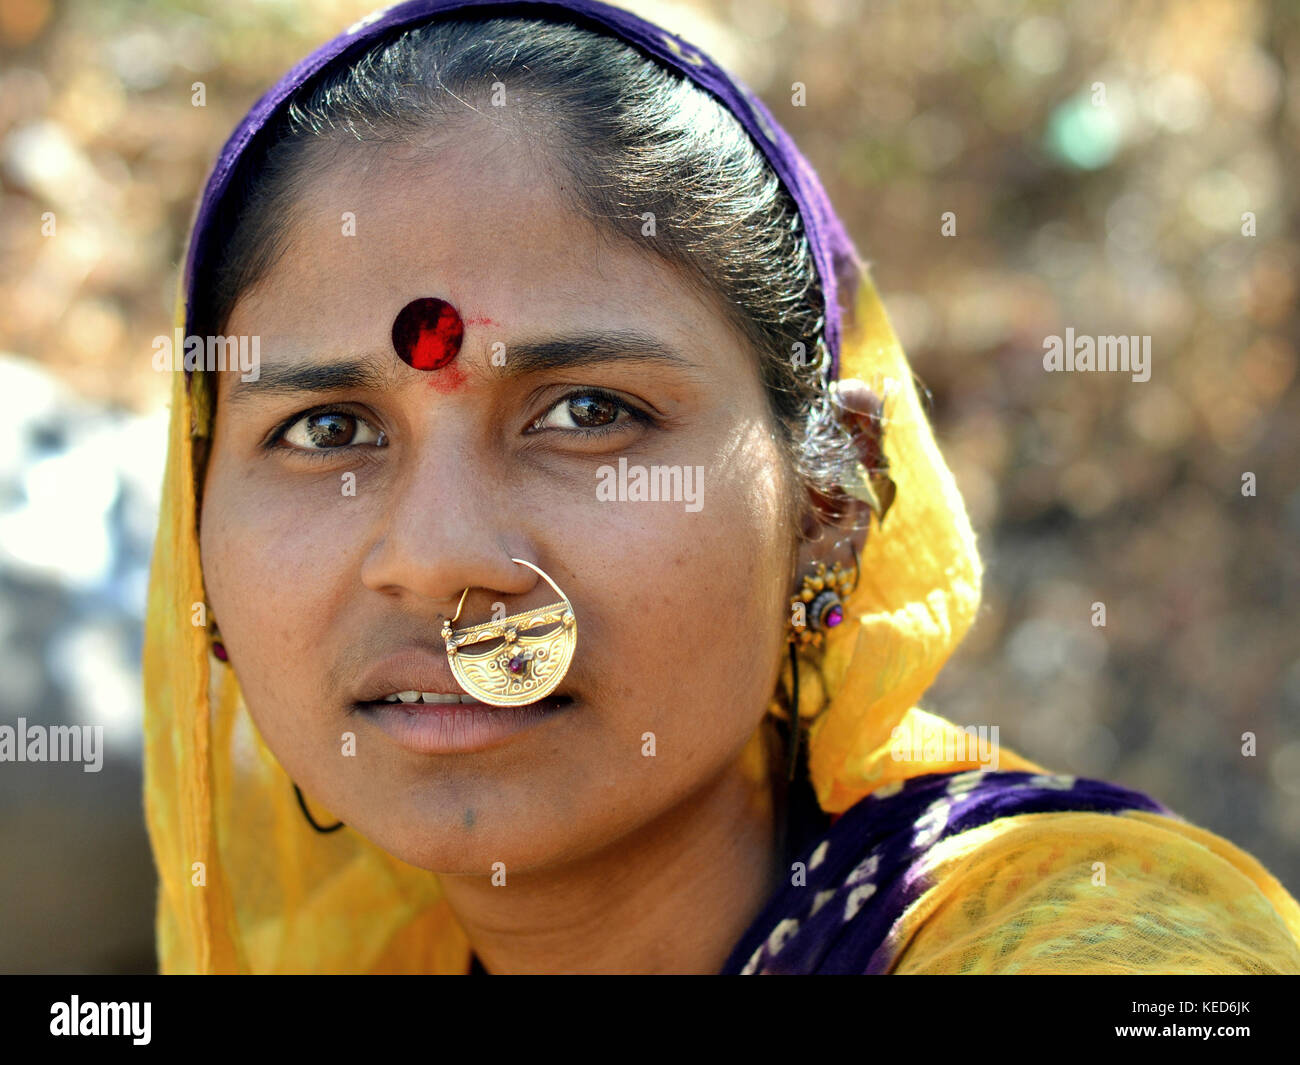 Head shot of a young Gujarati woman with yellow dupatta and precious traditional Indian nose jewellery - Stock Image